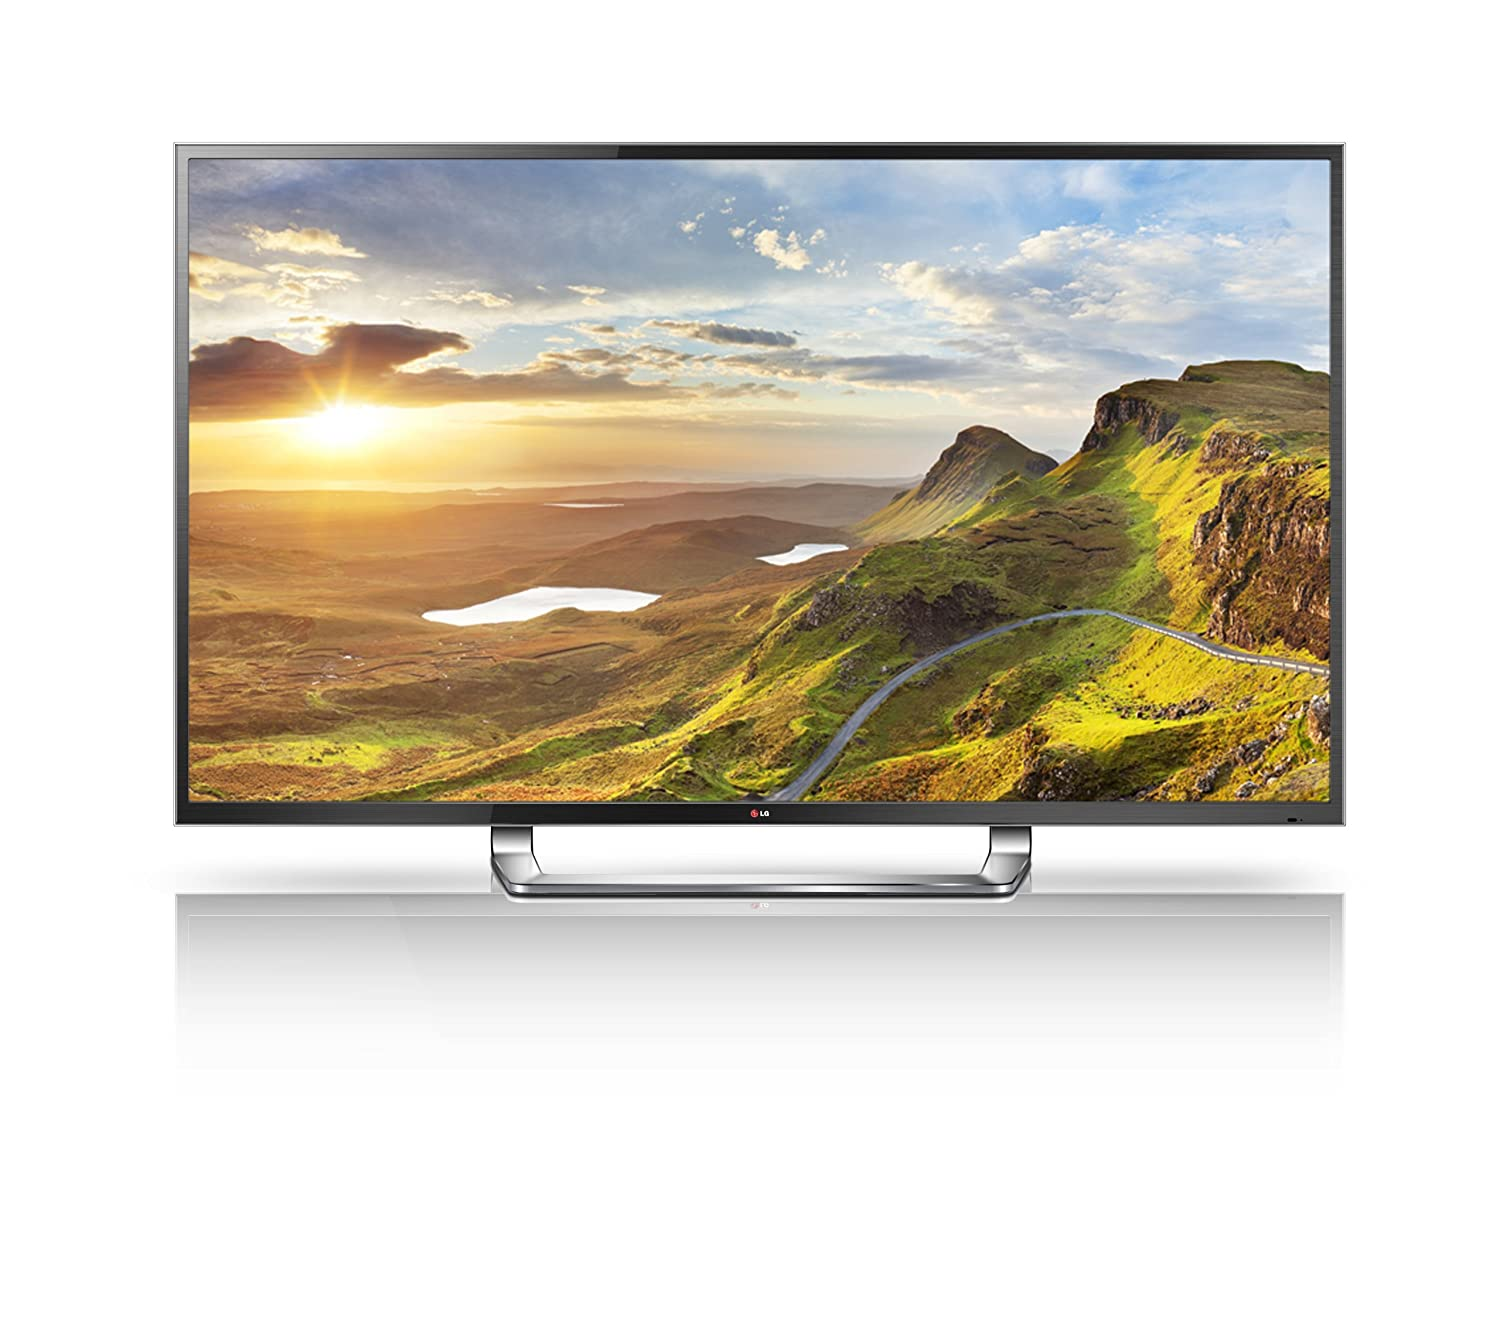 LG Electronics 84LM9600 84-Inch Cinema 3D 4K Ultra HD 120Hz LED-LCD HDTV with Smart TV and Six Pairs of 3D Glasses